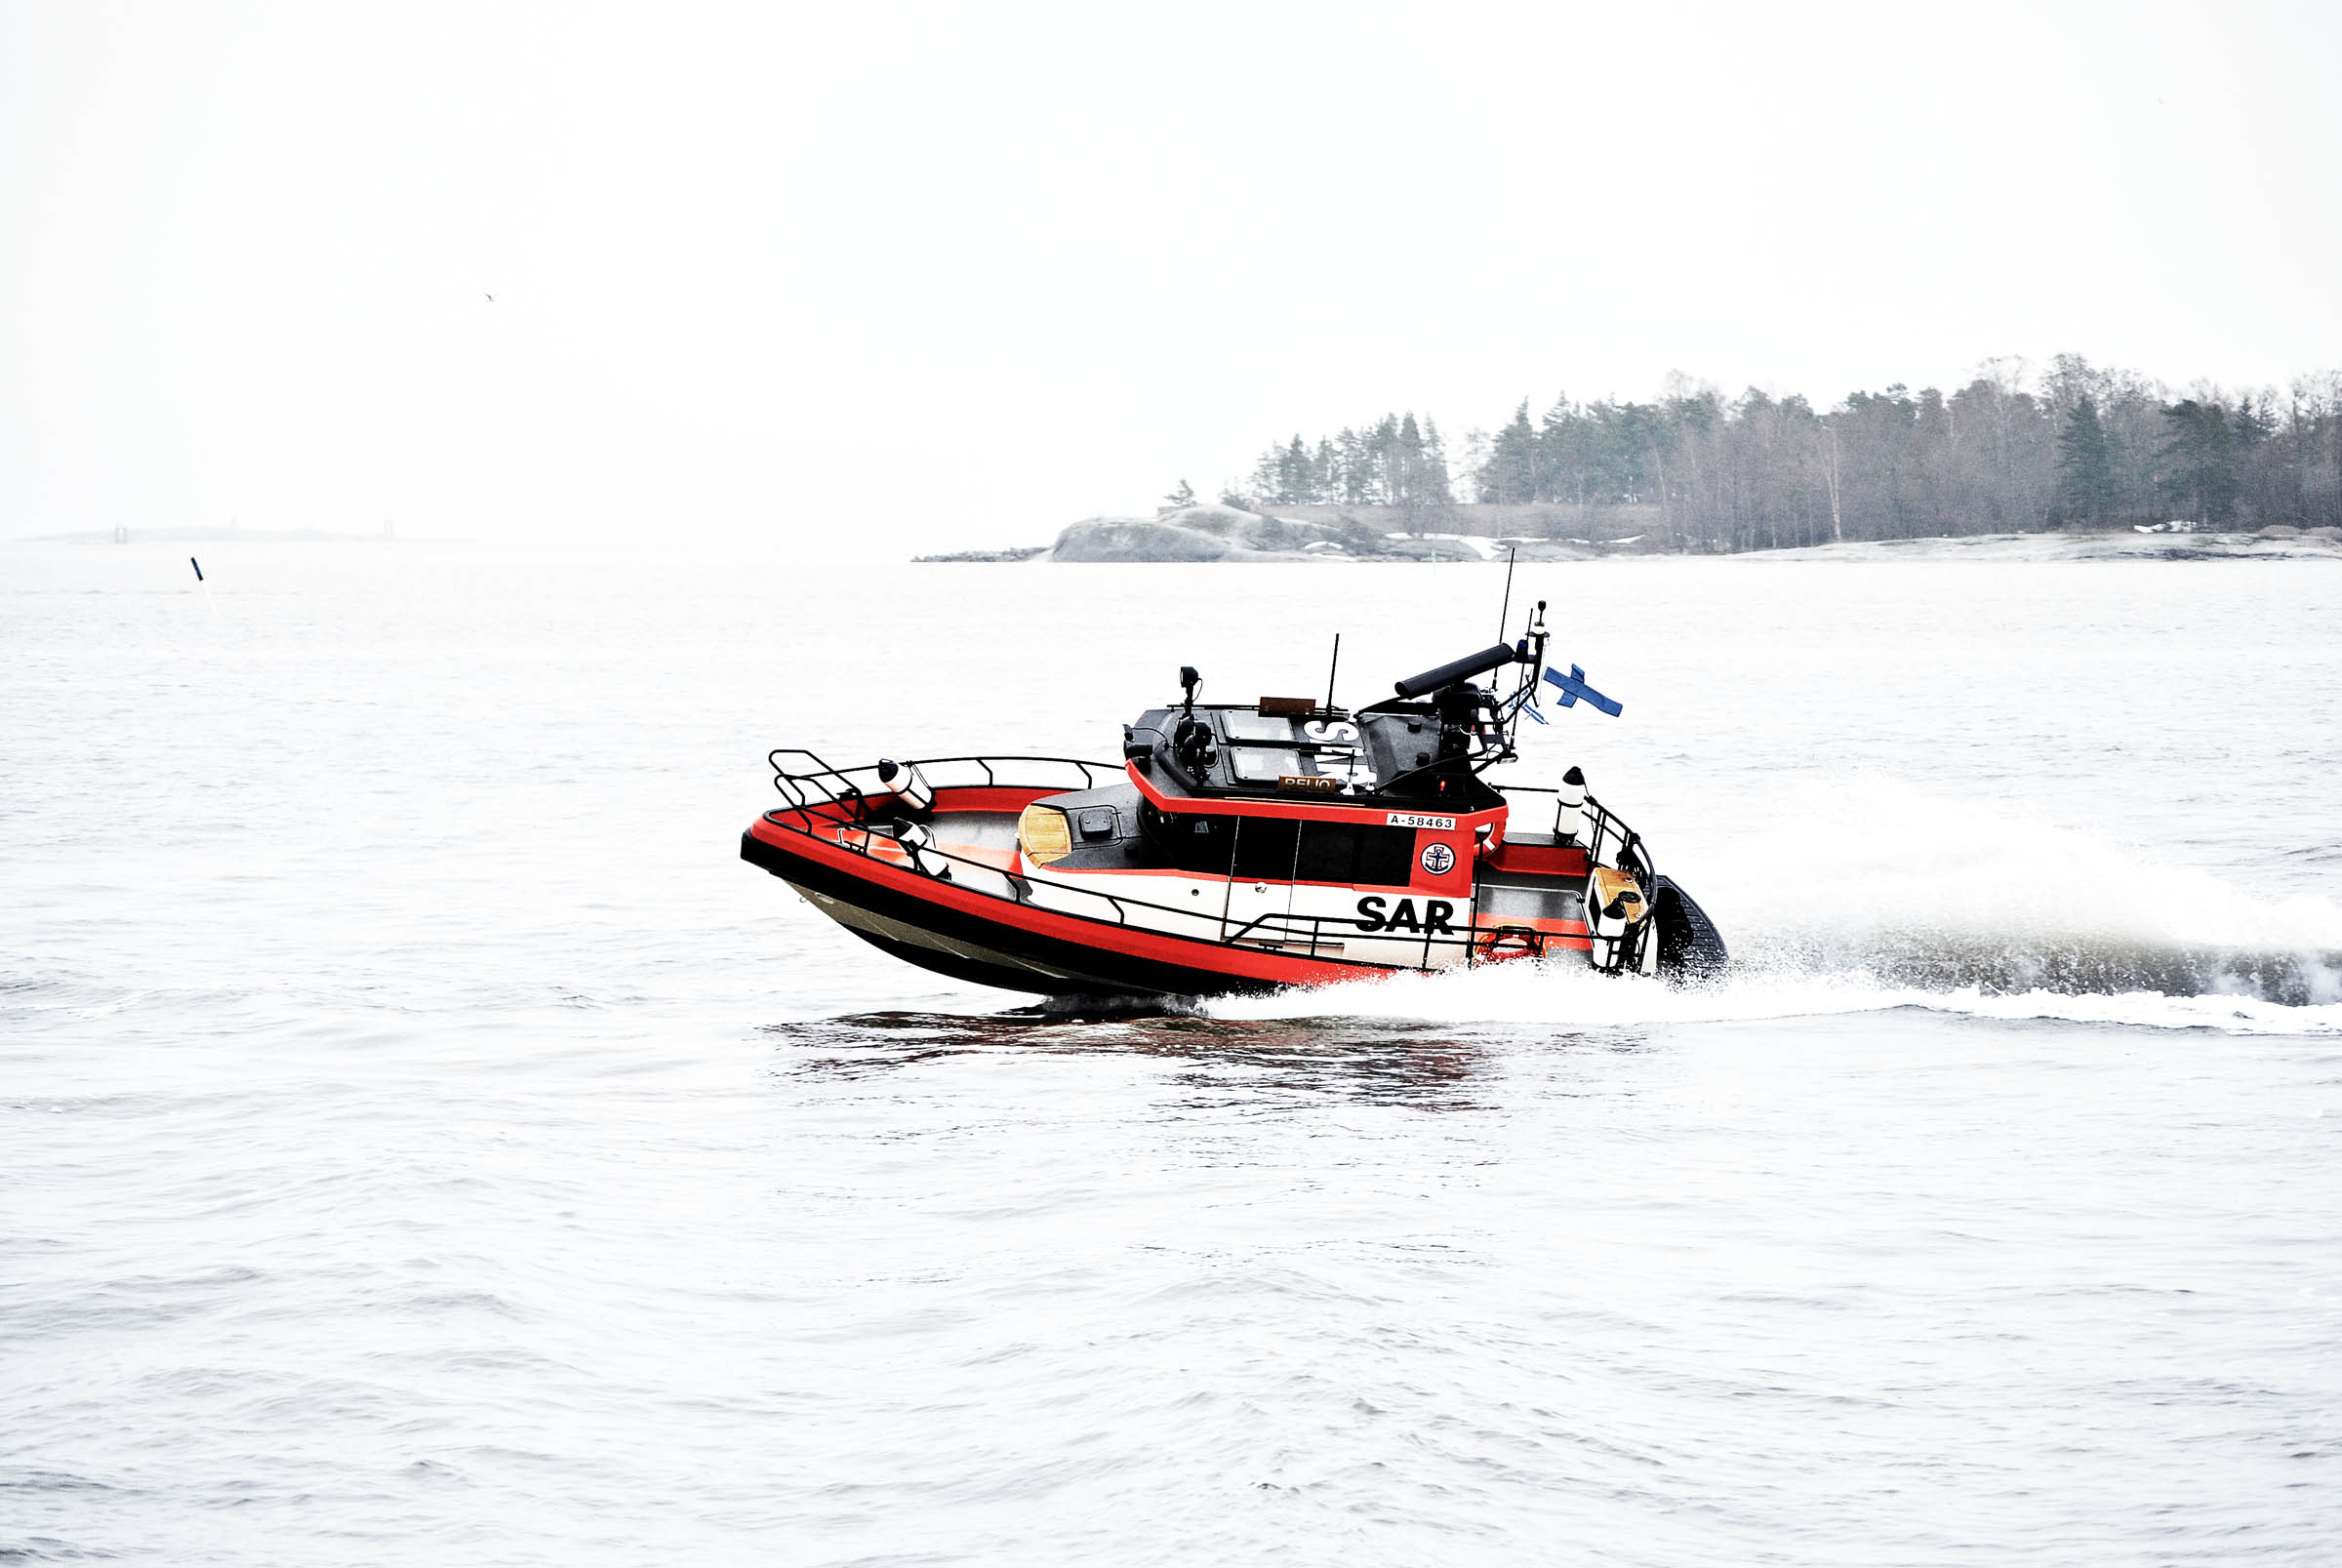 P25 SAR boat with finnish flag